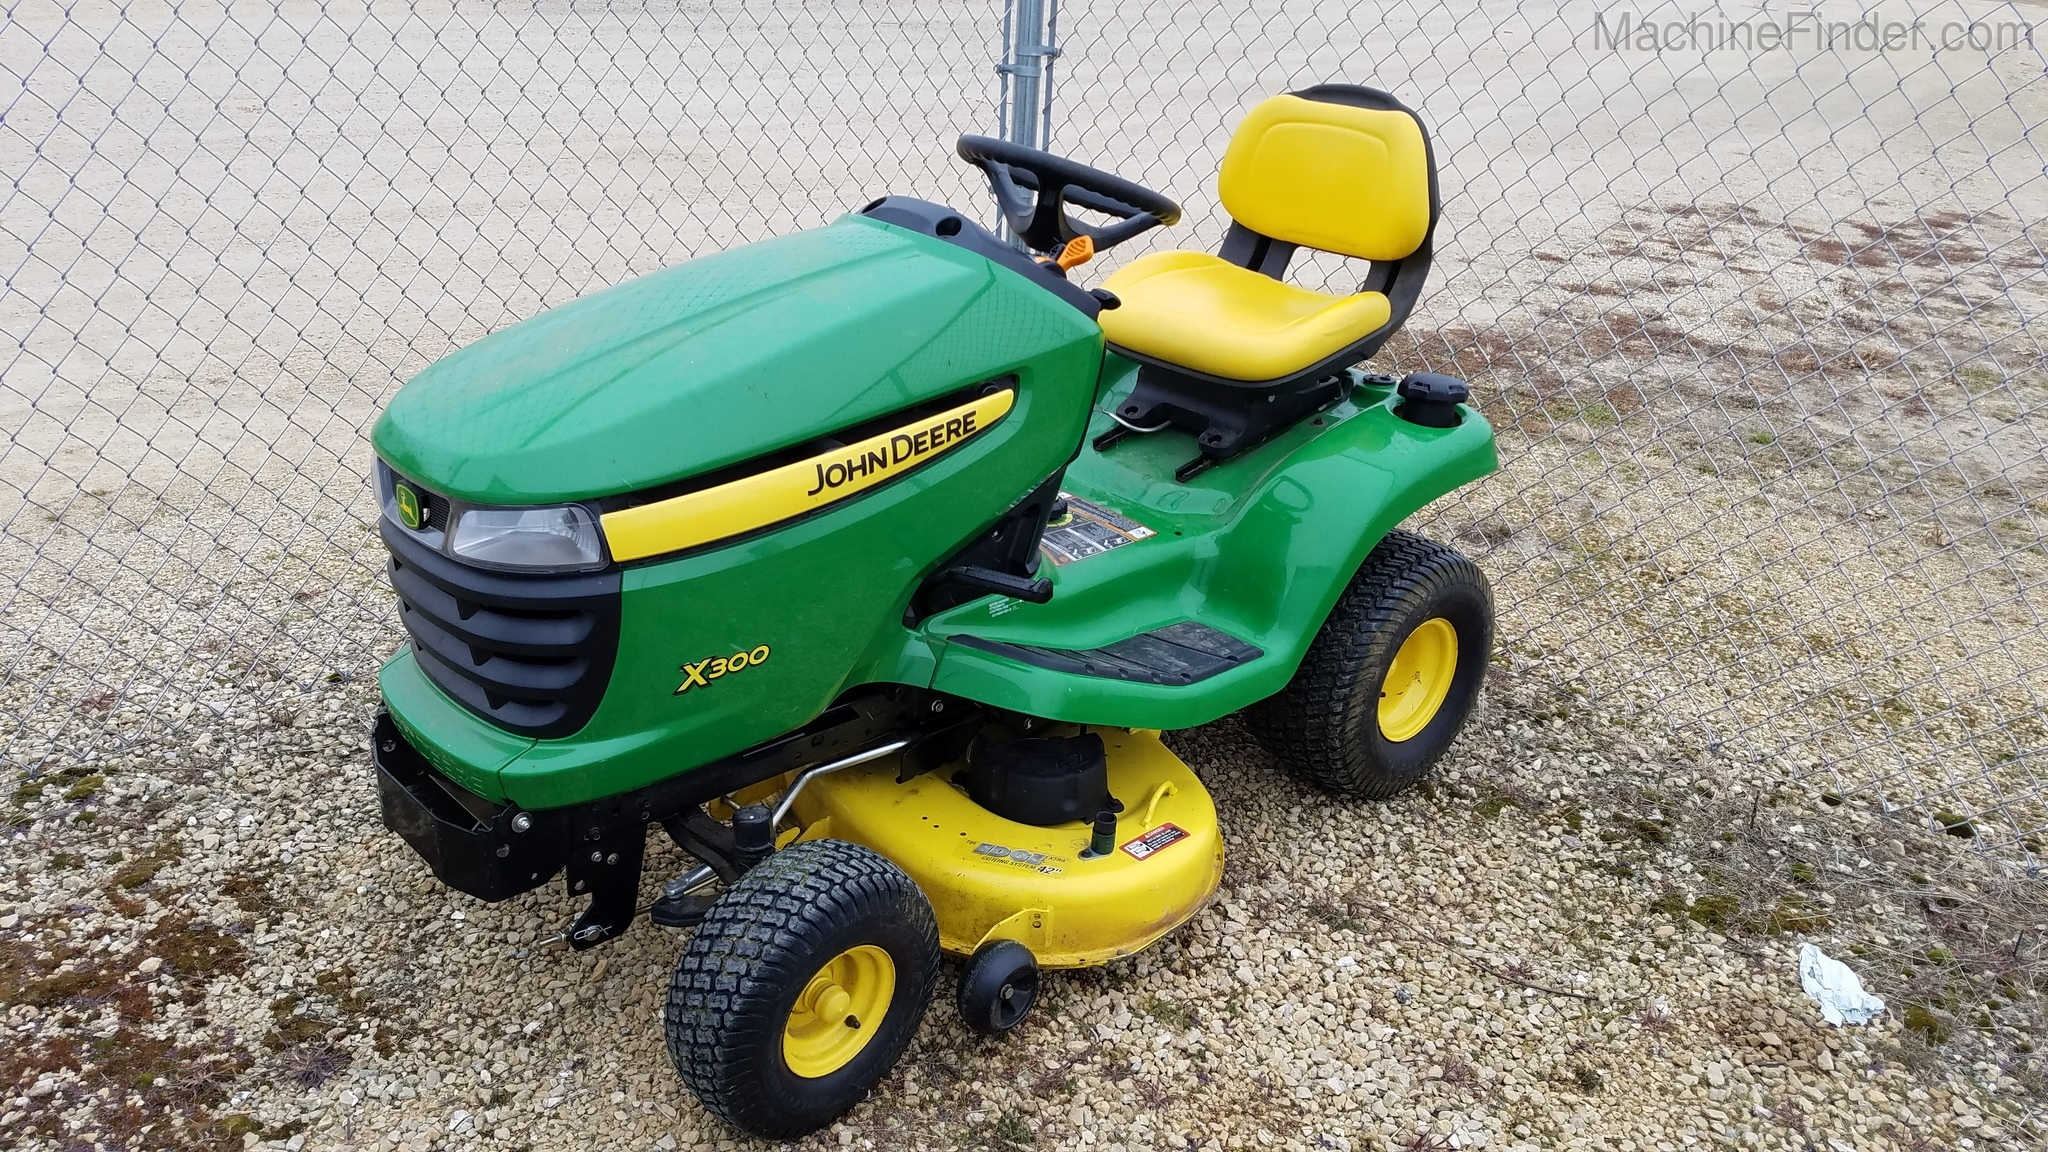 john deere x300 lawn mower reviews bruin blog. Black Bedroom Furniture Sets. Home Design Ideas